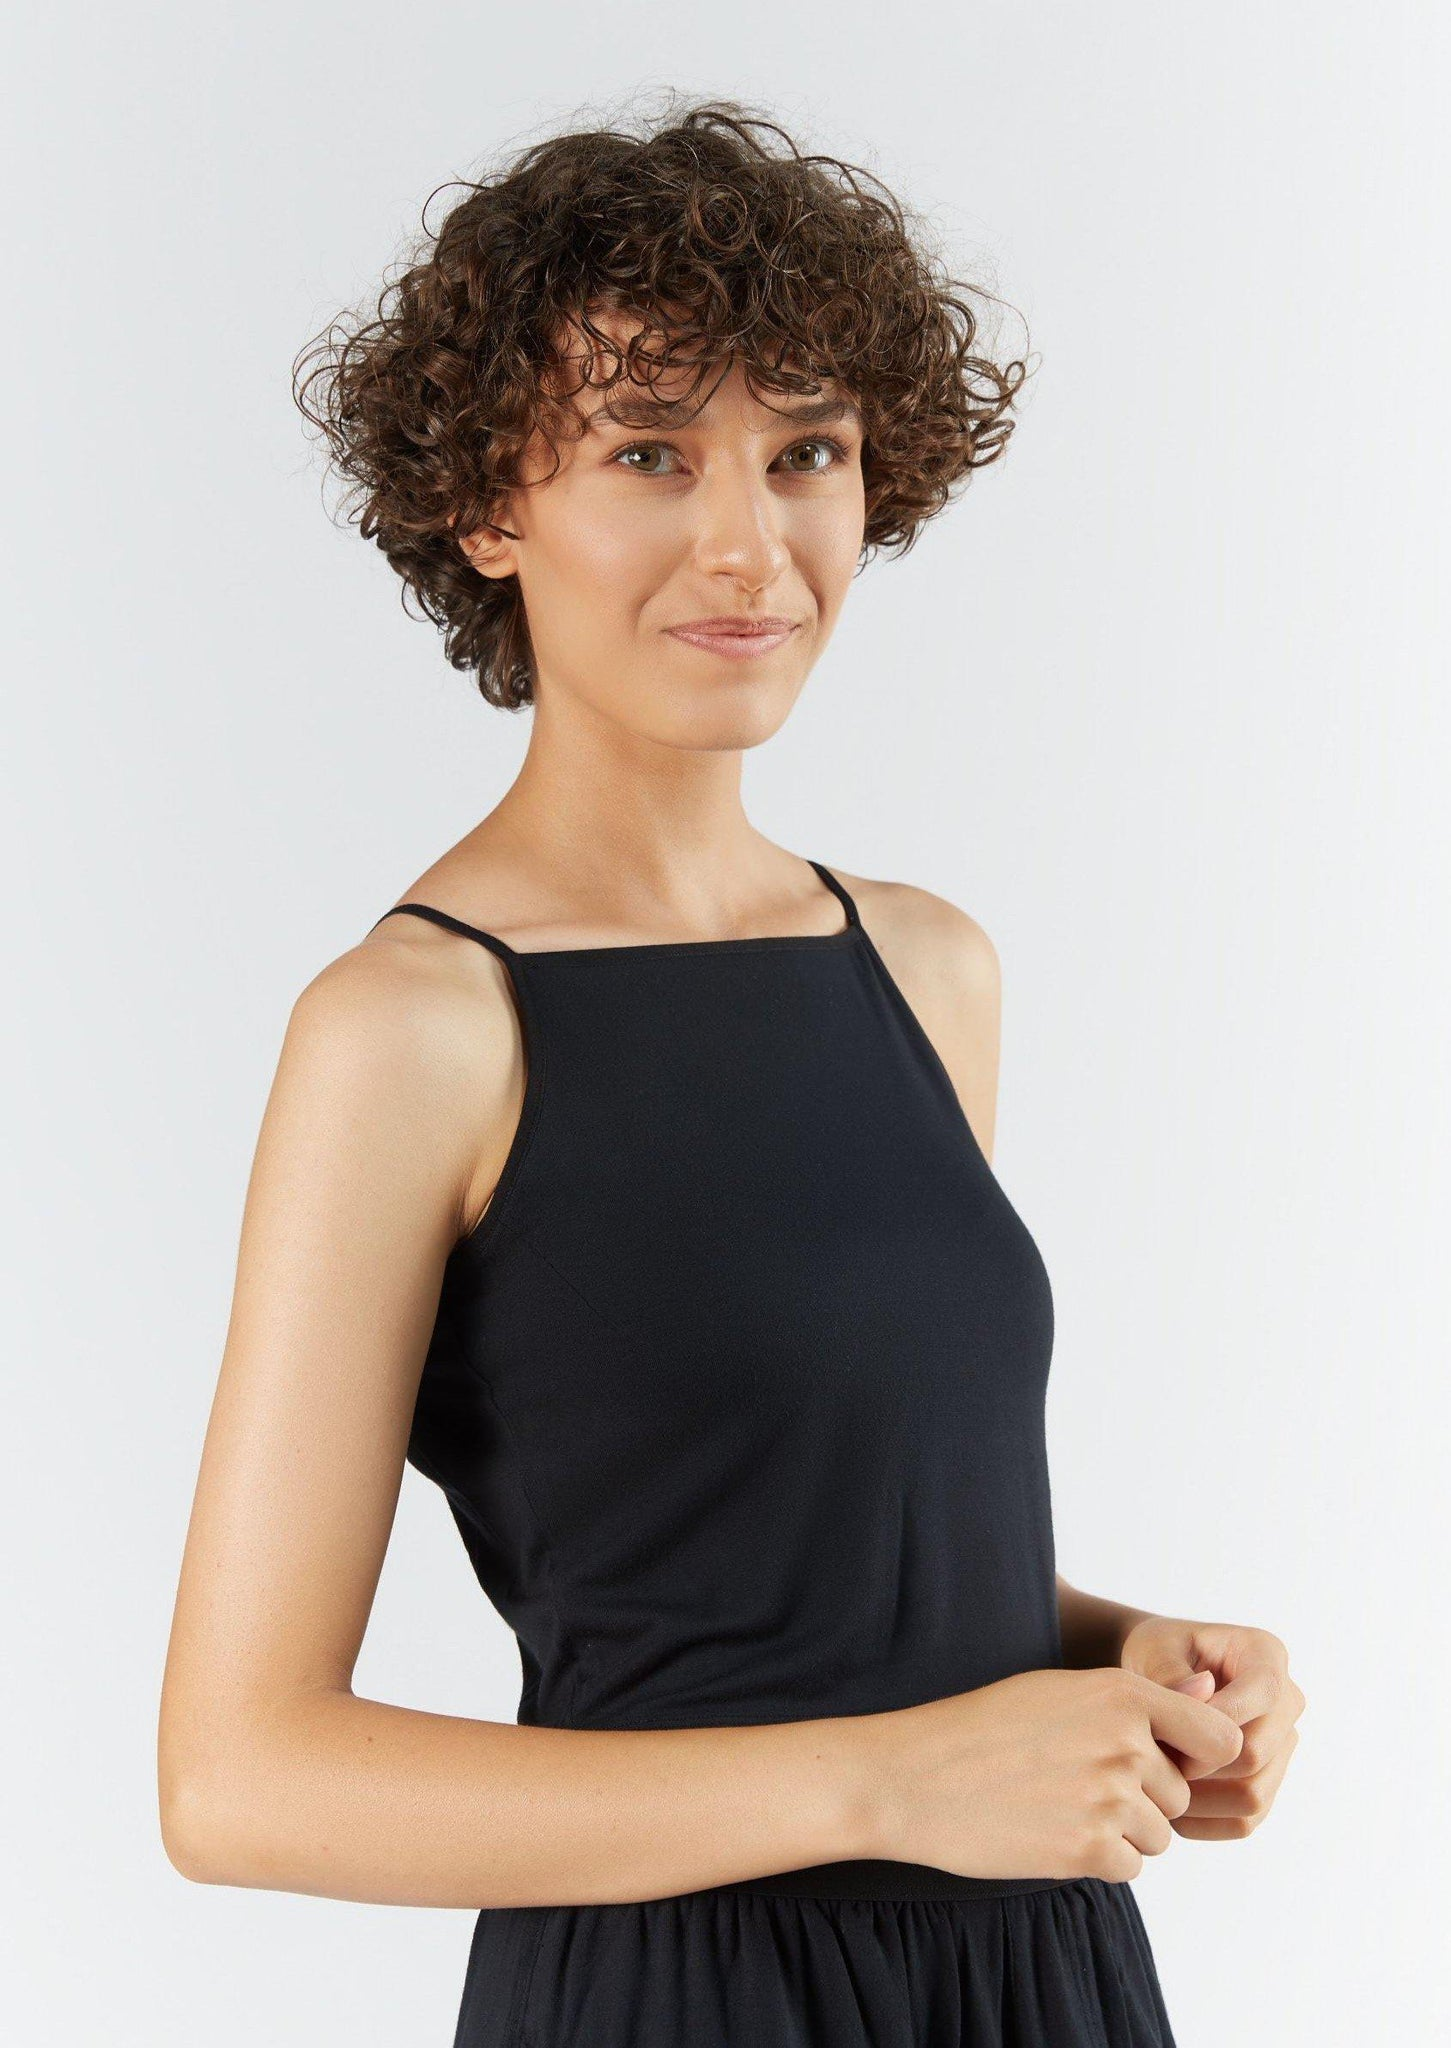 Modal Lite Extra Soft Camisole Top with Built-in Bra